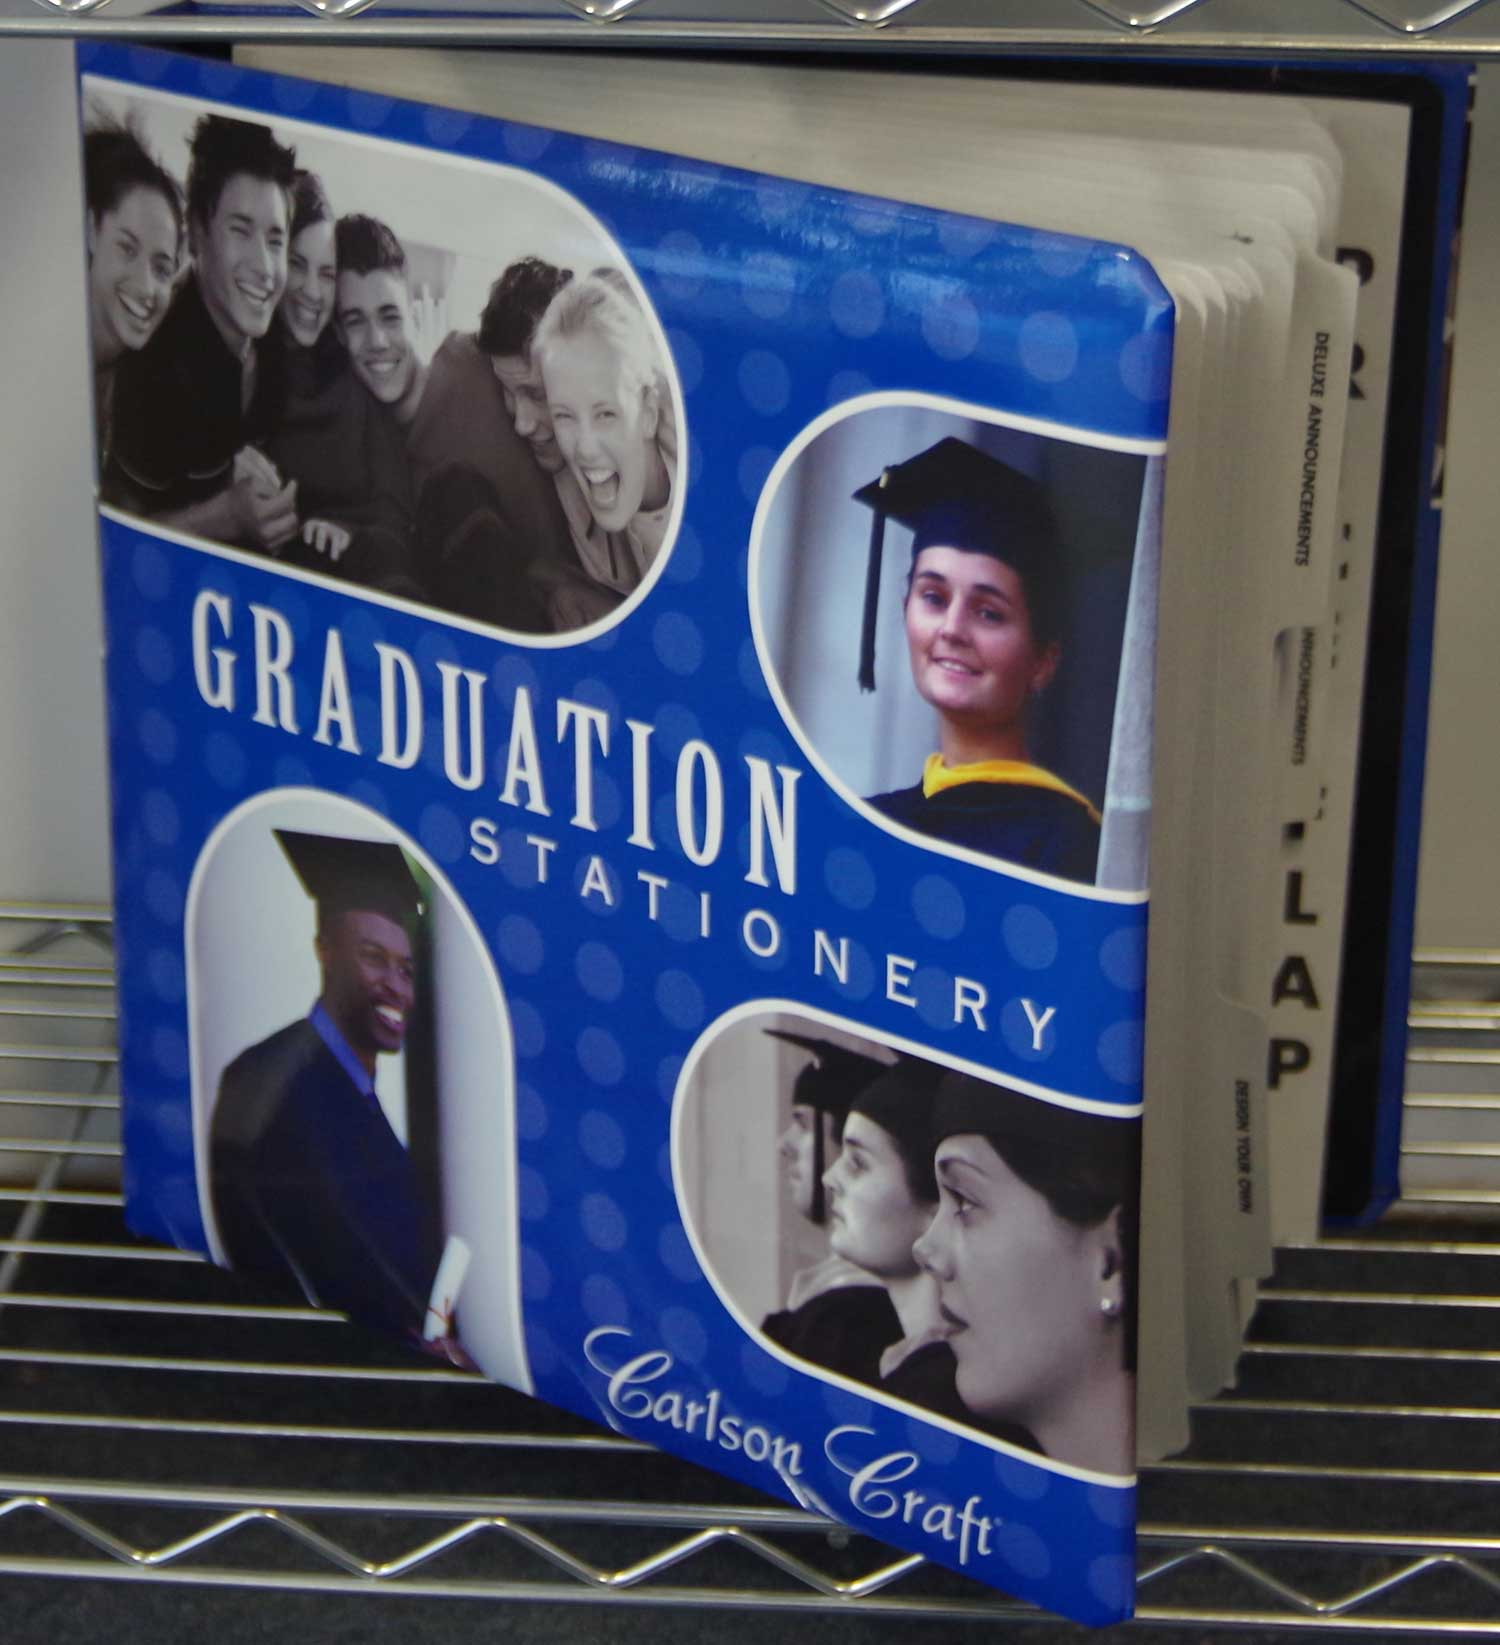 Graduation Stationery - Quality Quick Print - Eau Claire Printing, Banners and Signs